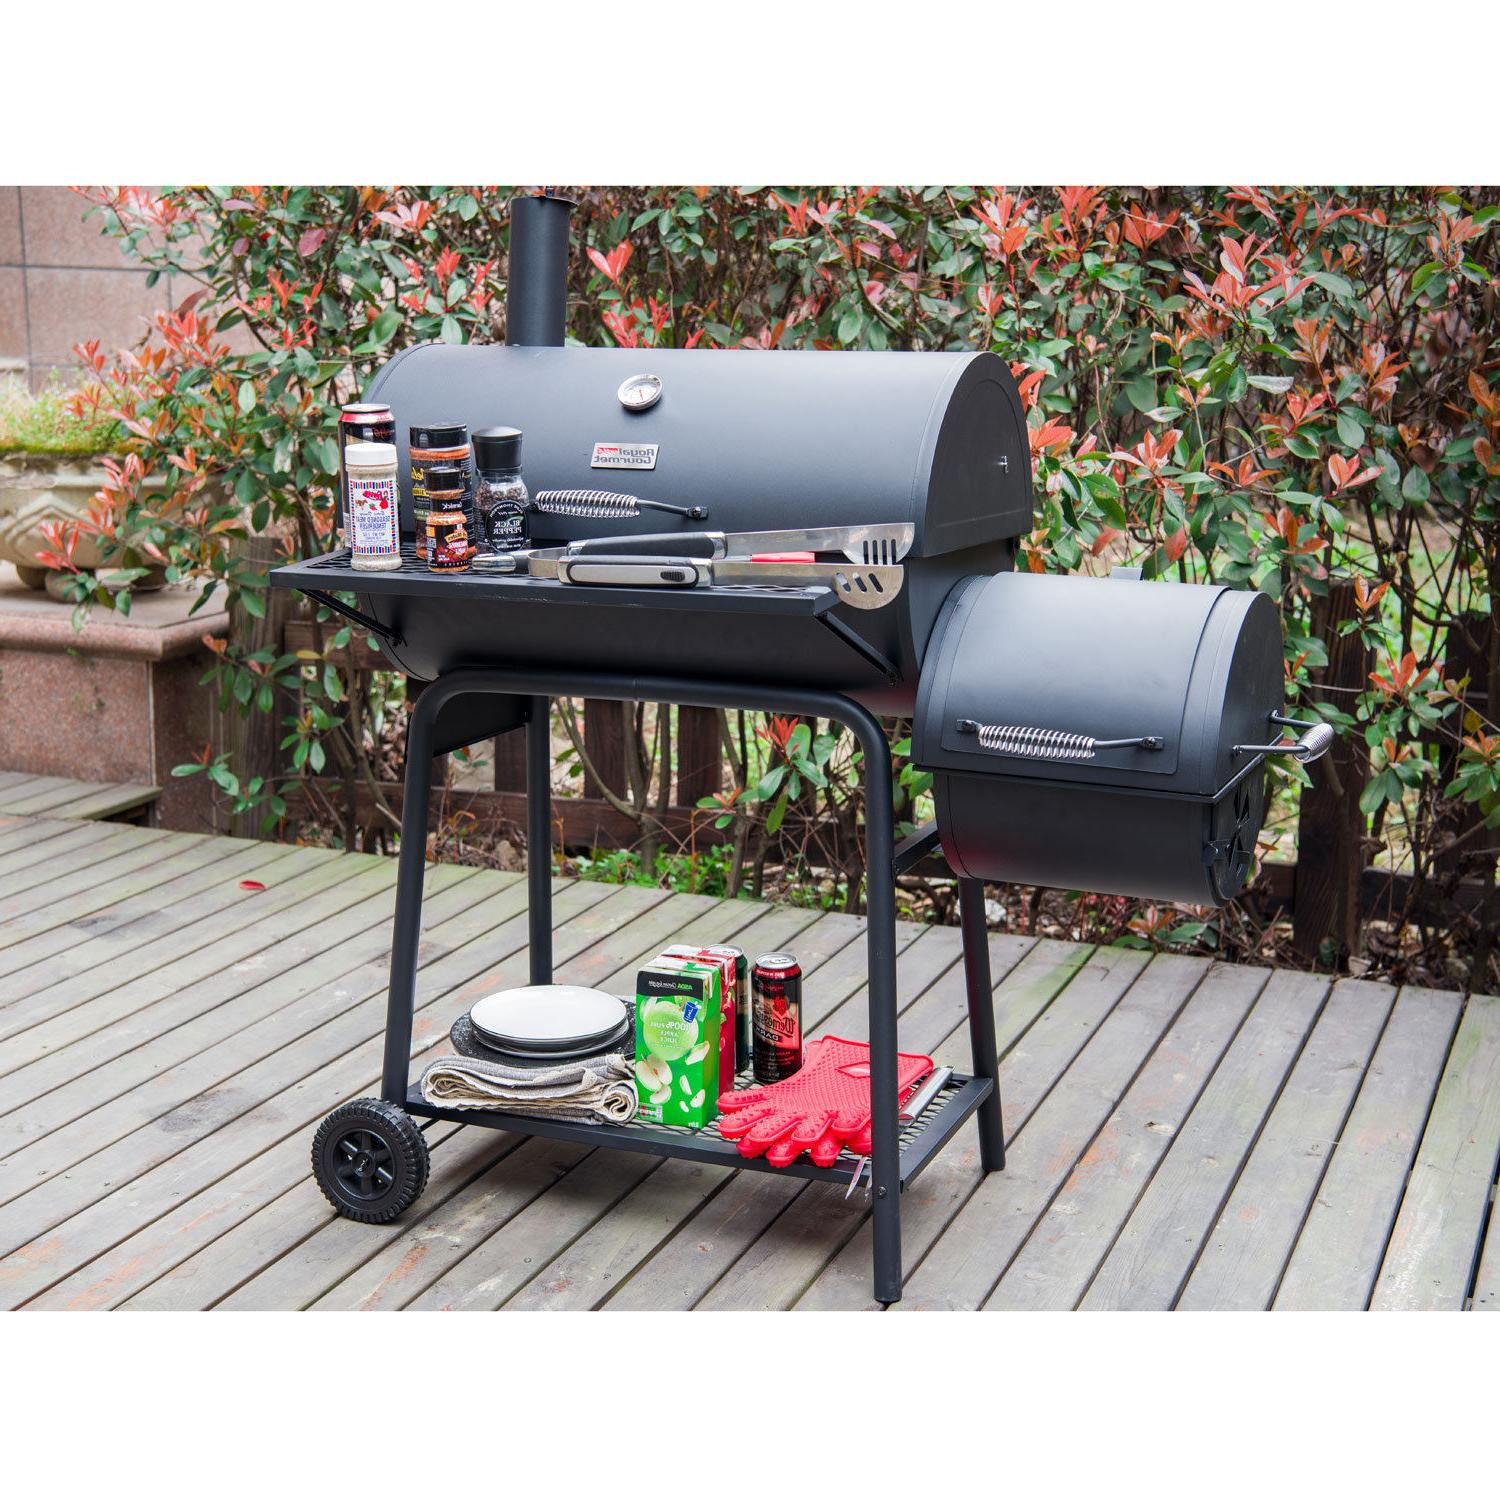 Royal Gourmet Grill with Backyard Cooking 30""